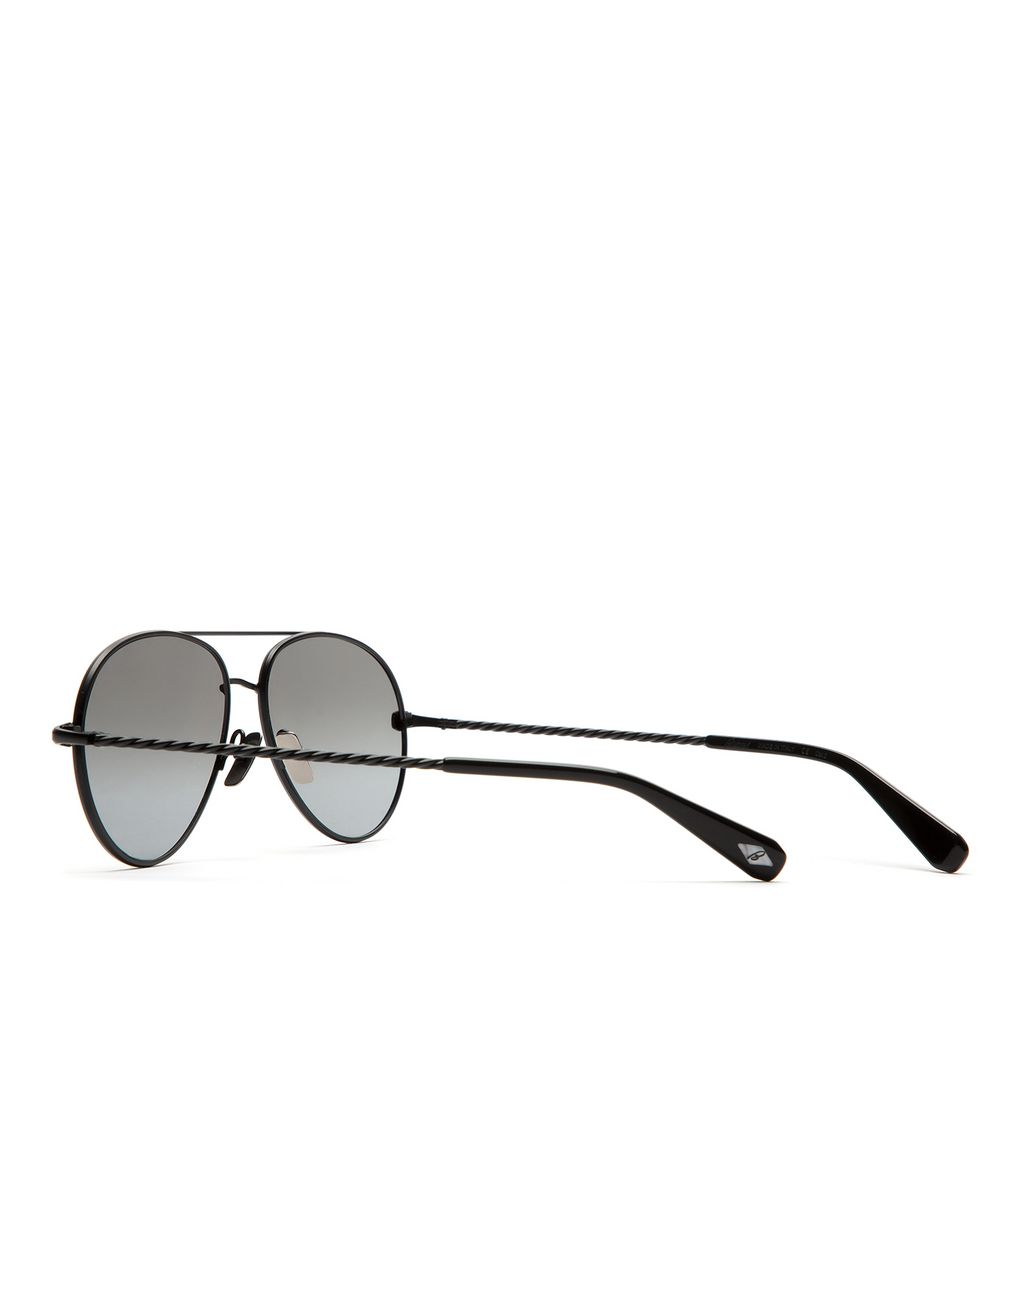 BRIONI Silver Black Aviator Sunglasses with Gray Lenses Sunglasses Man d